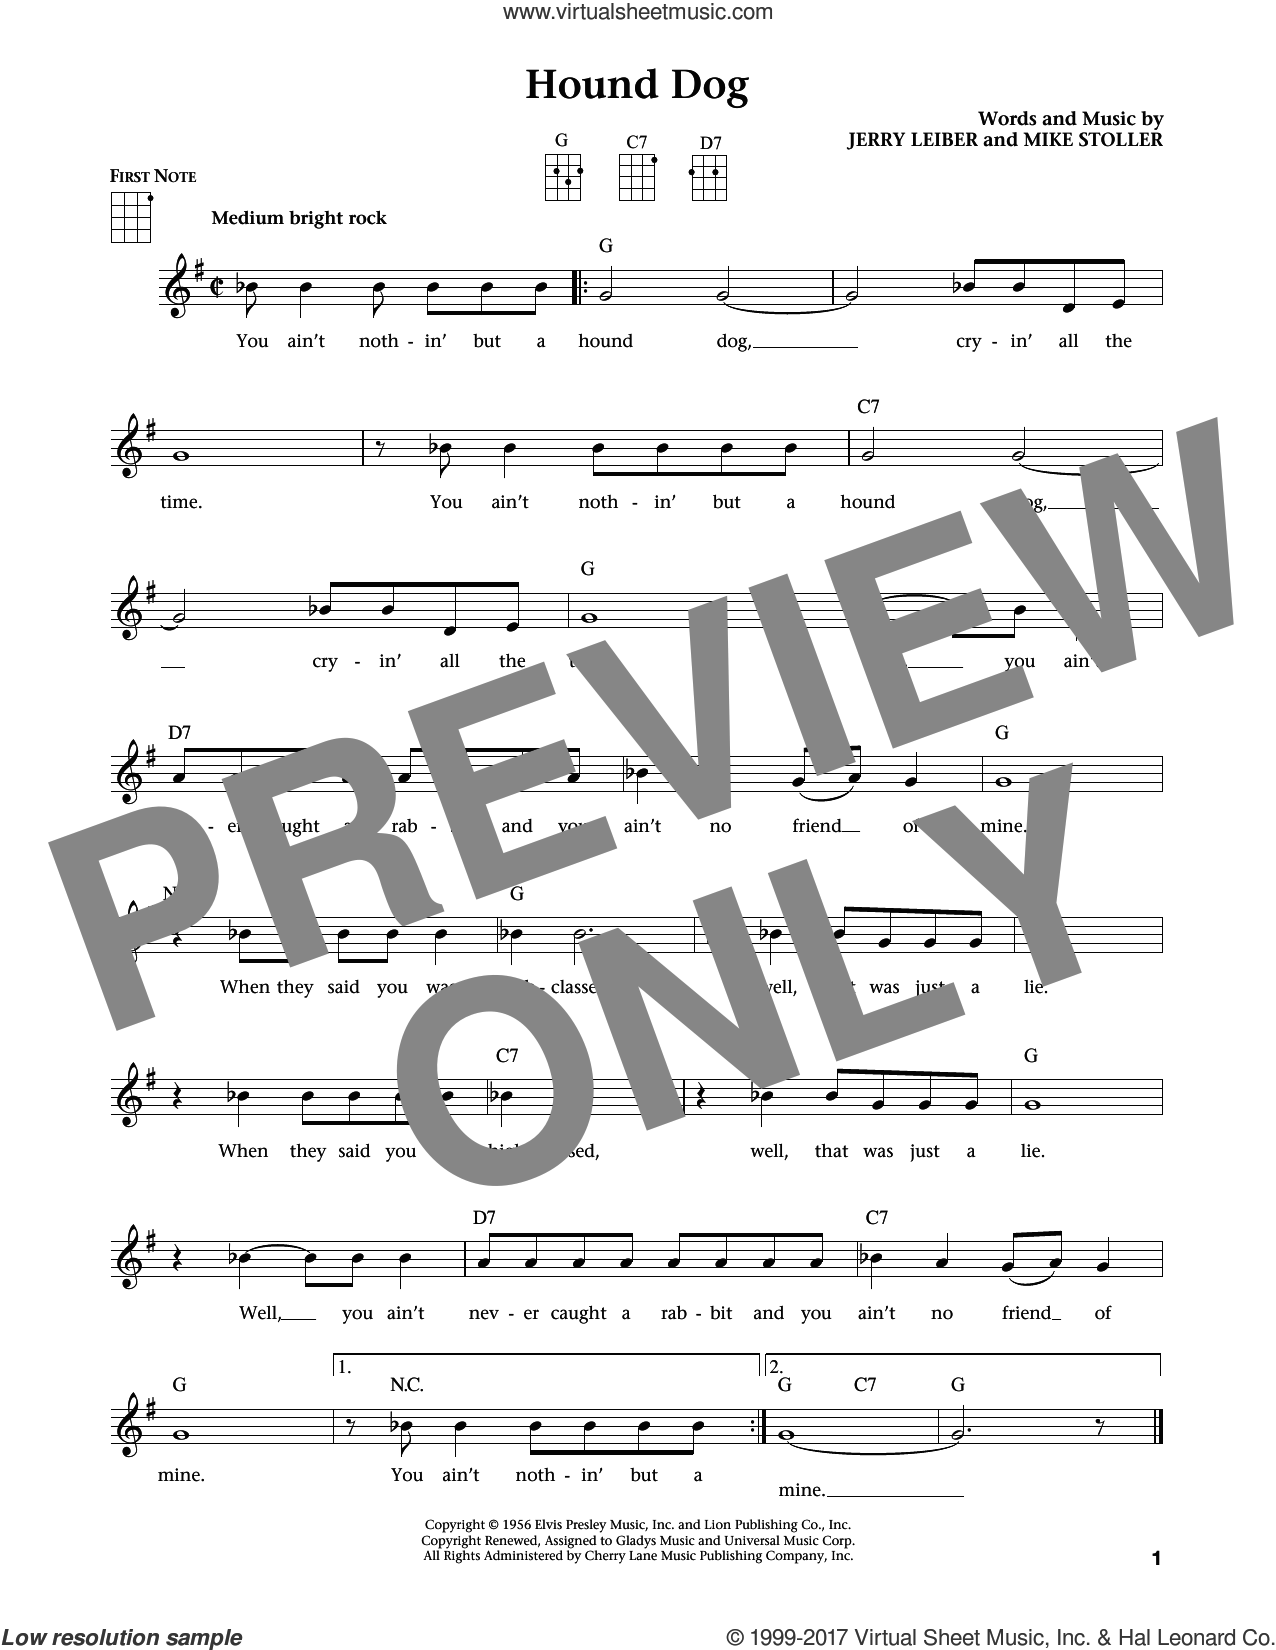 Hound Dog (from The Daily Ukulele) (arr. Liz and Jim Beloff) sheet music for ukulele by Elvis Presley, Jim Beloff, Liz Beloff, Jerry Leiber and Mike Stoller, intermediate skill level